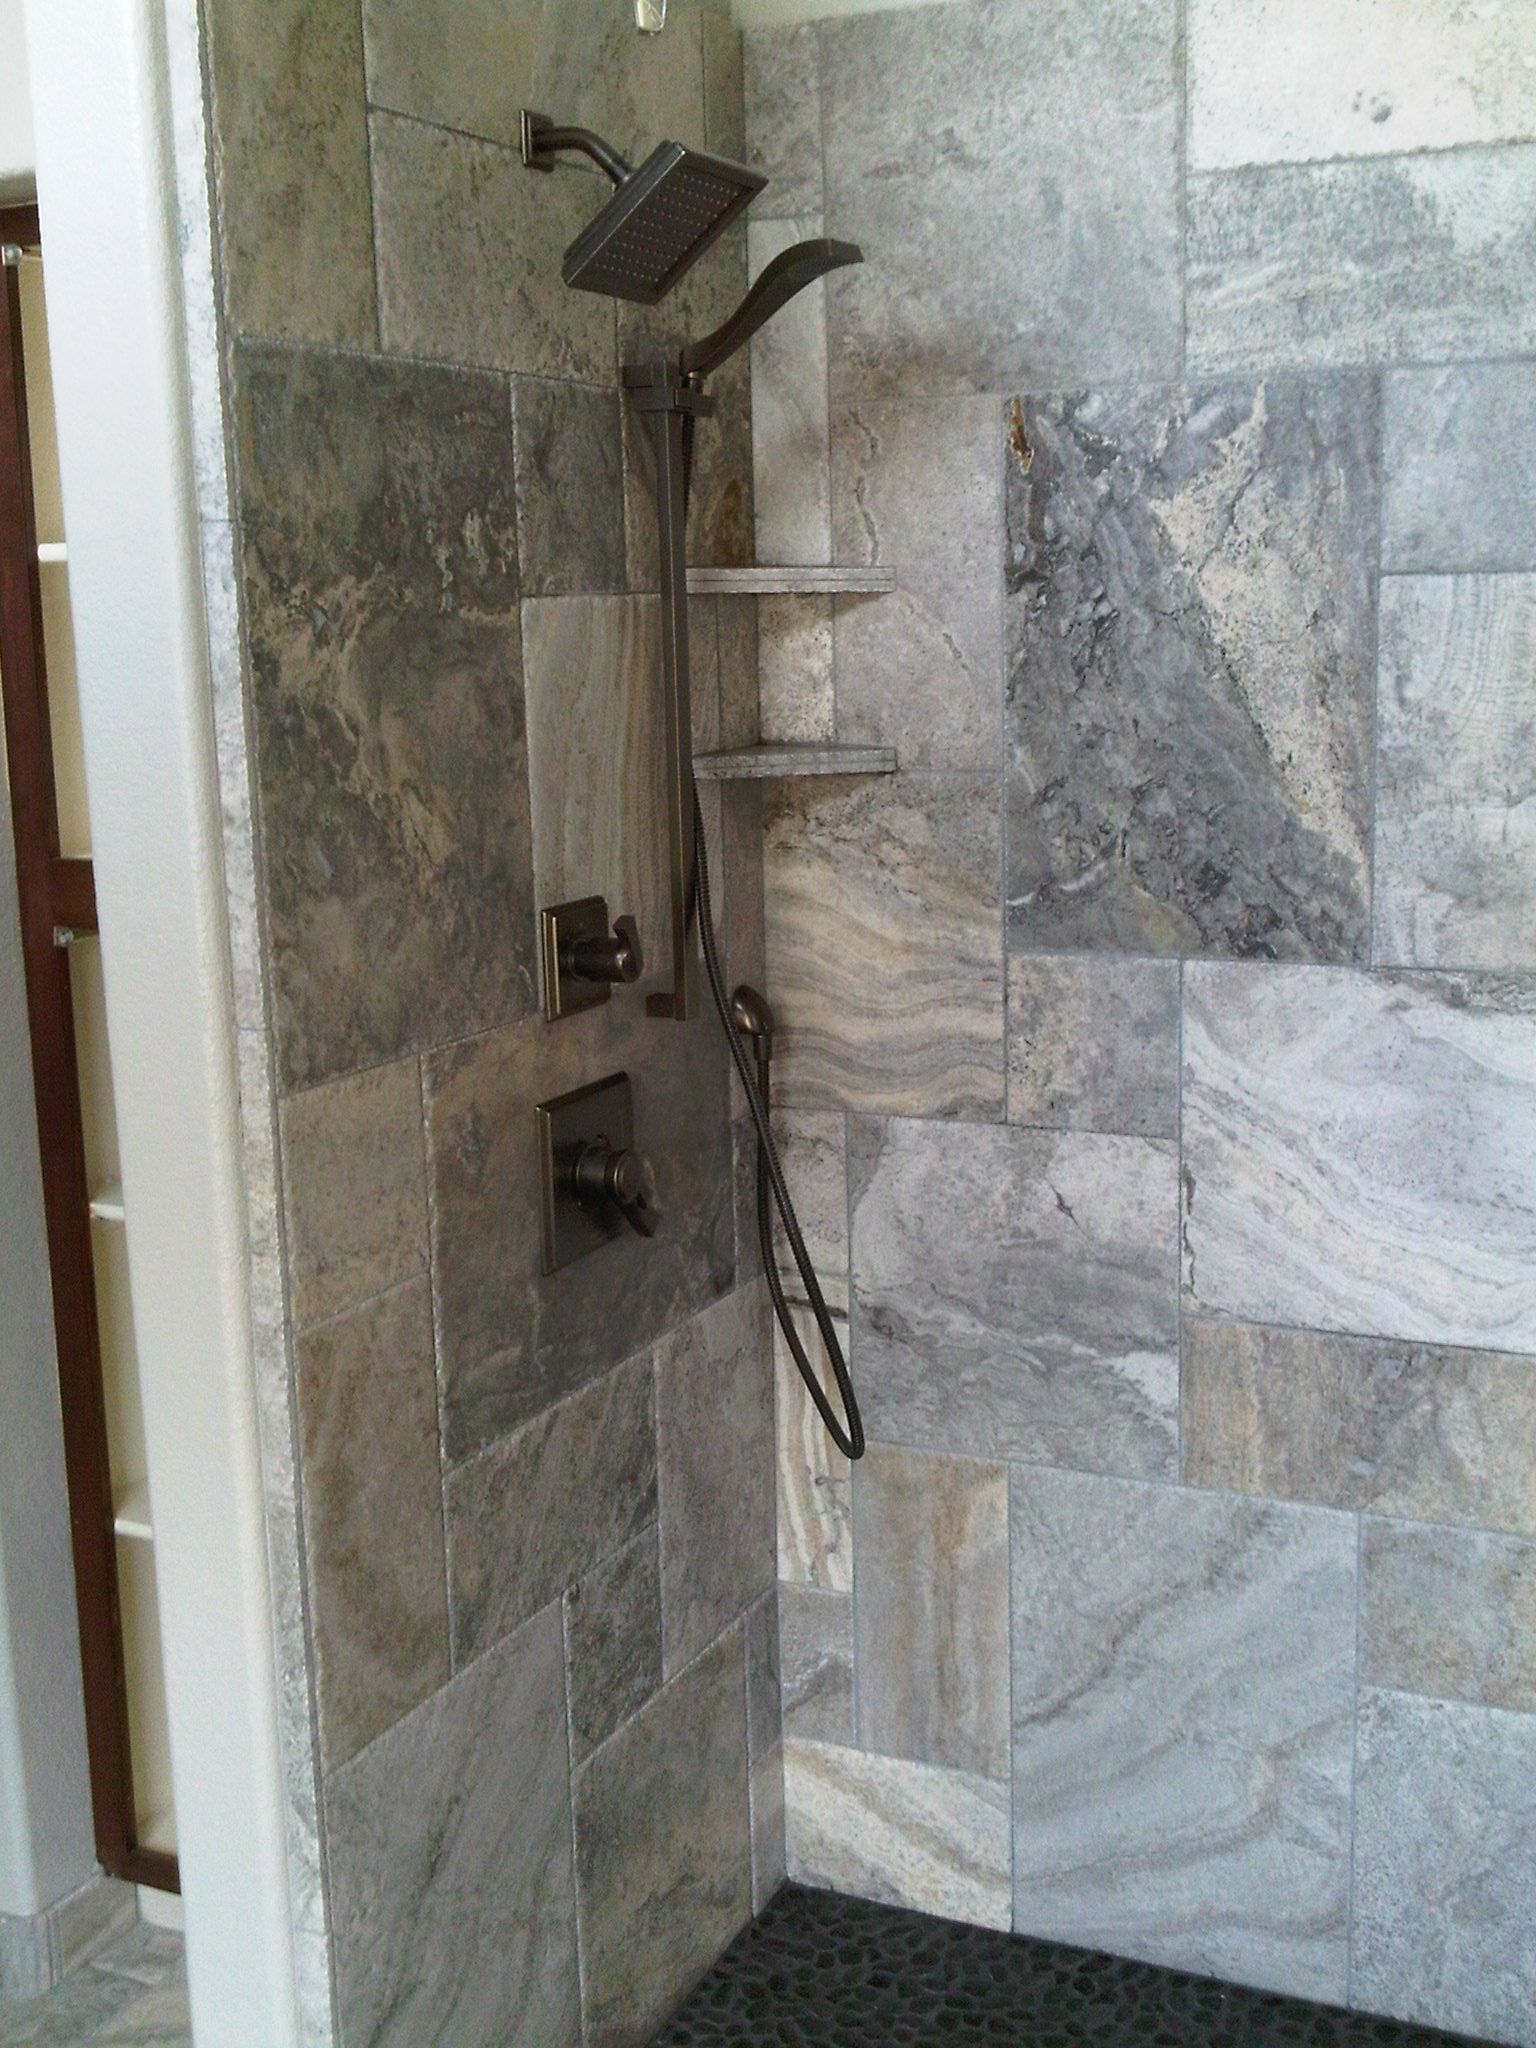 Silver Travertine in the shower | Bathrooms | Pinterest ...